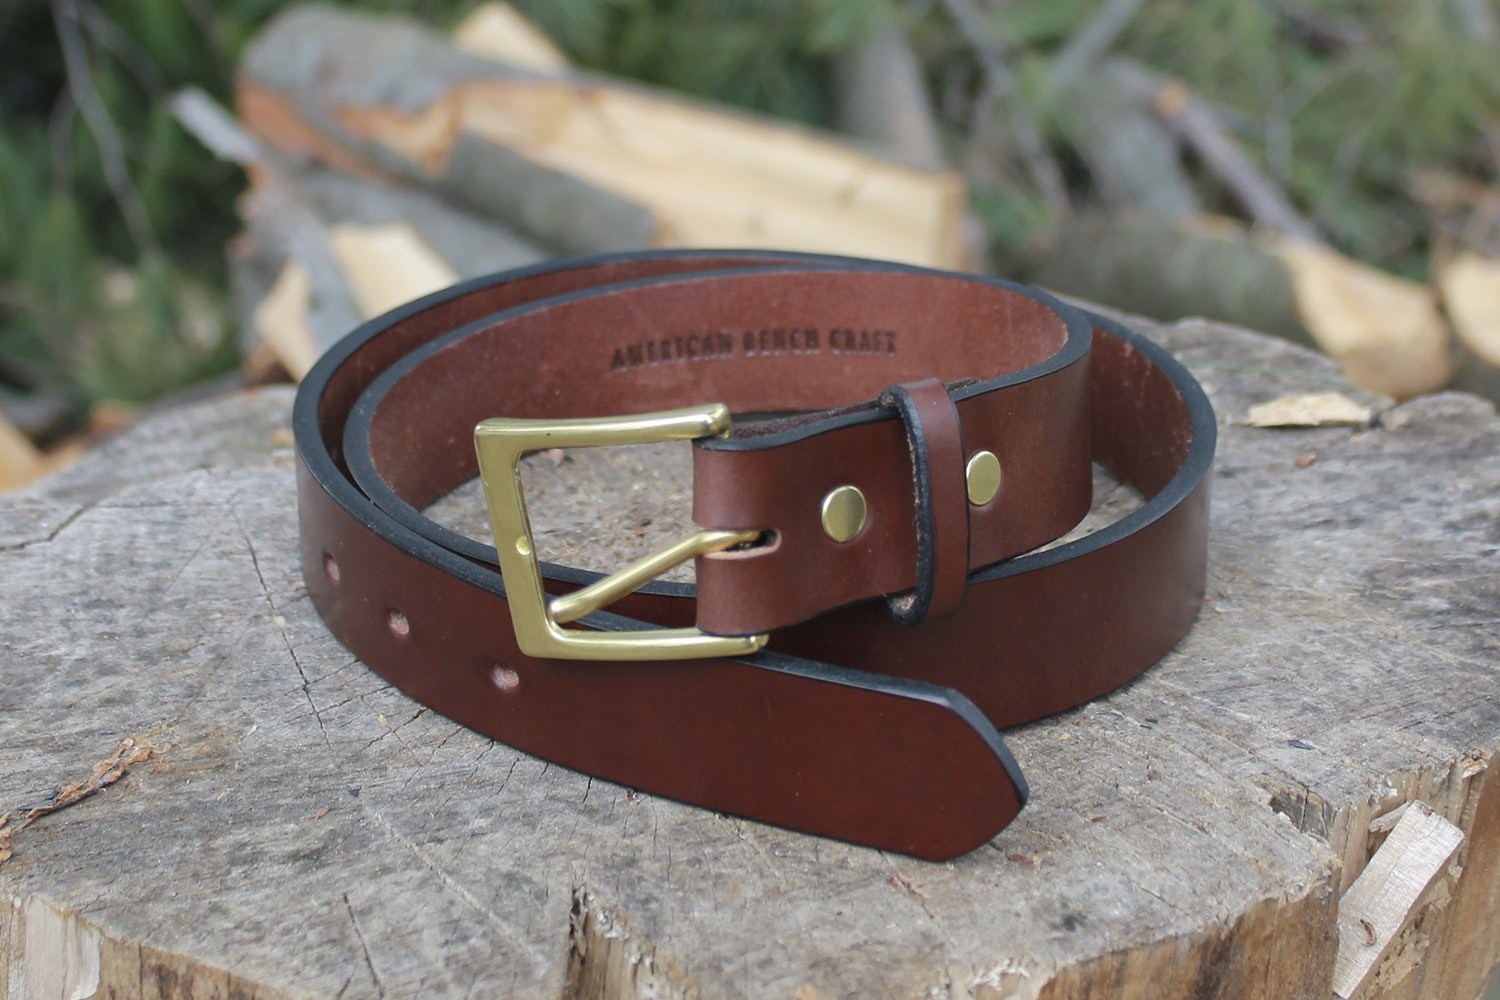 American Bench Craft Everyday Belt